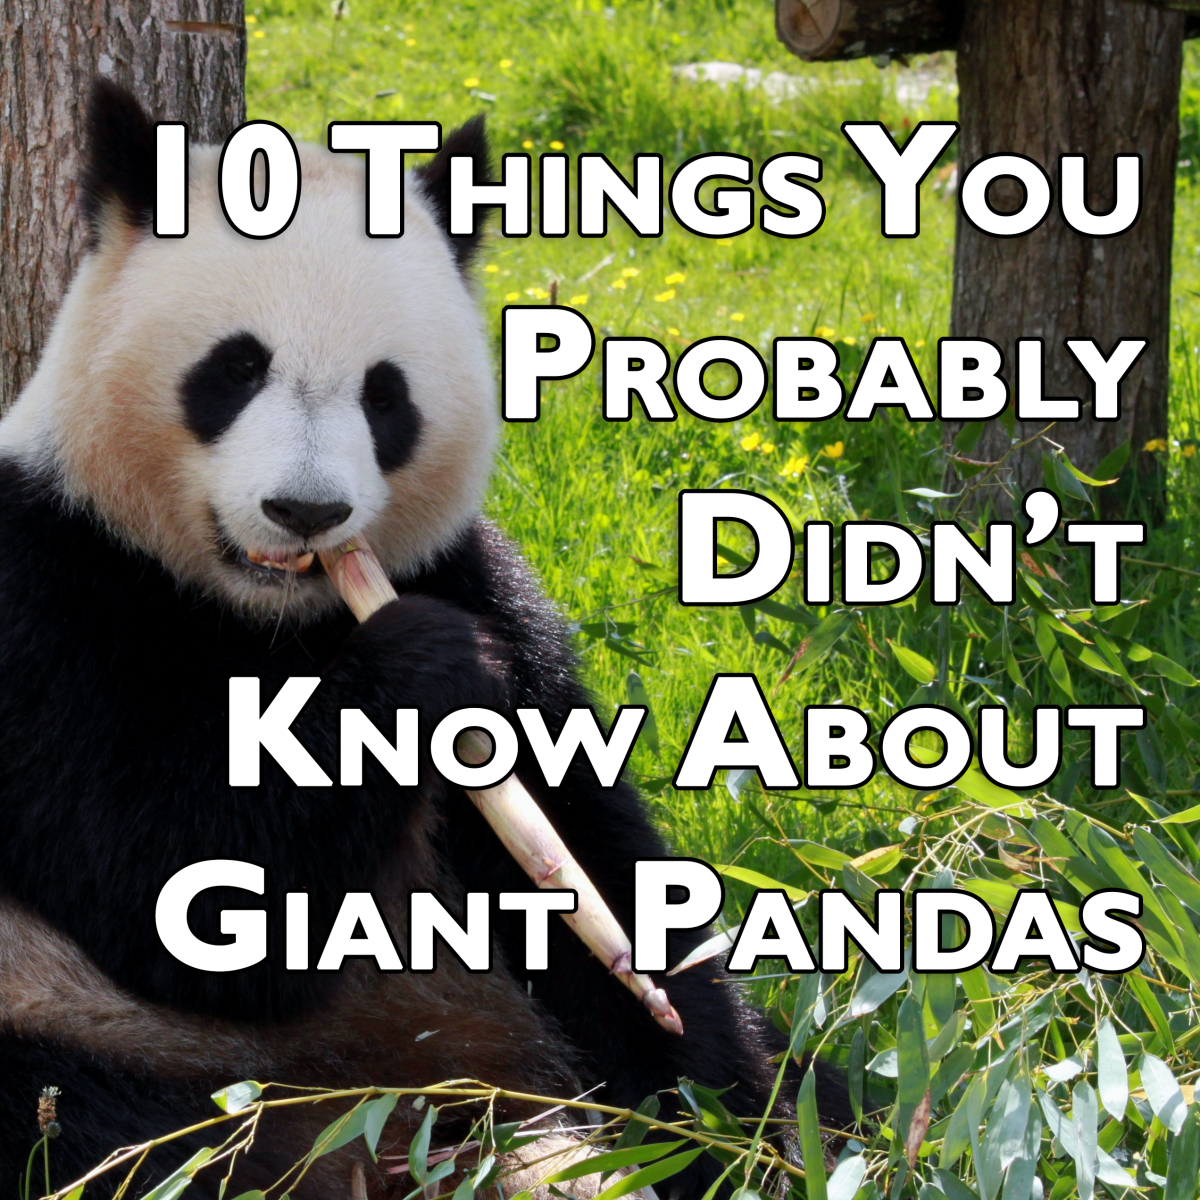 10 Things You Probably Didn't Know About Giant Pandas